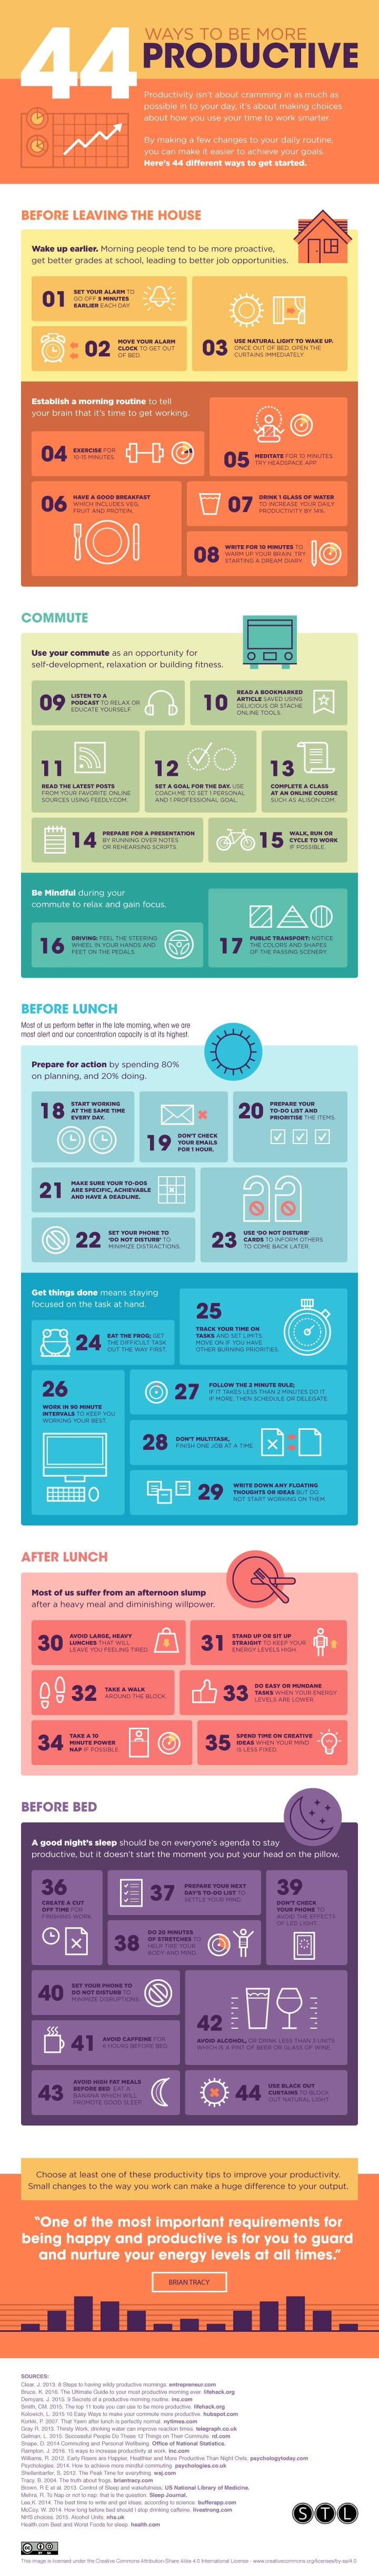 44 ways to be more productive